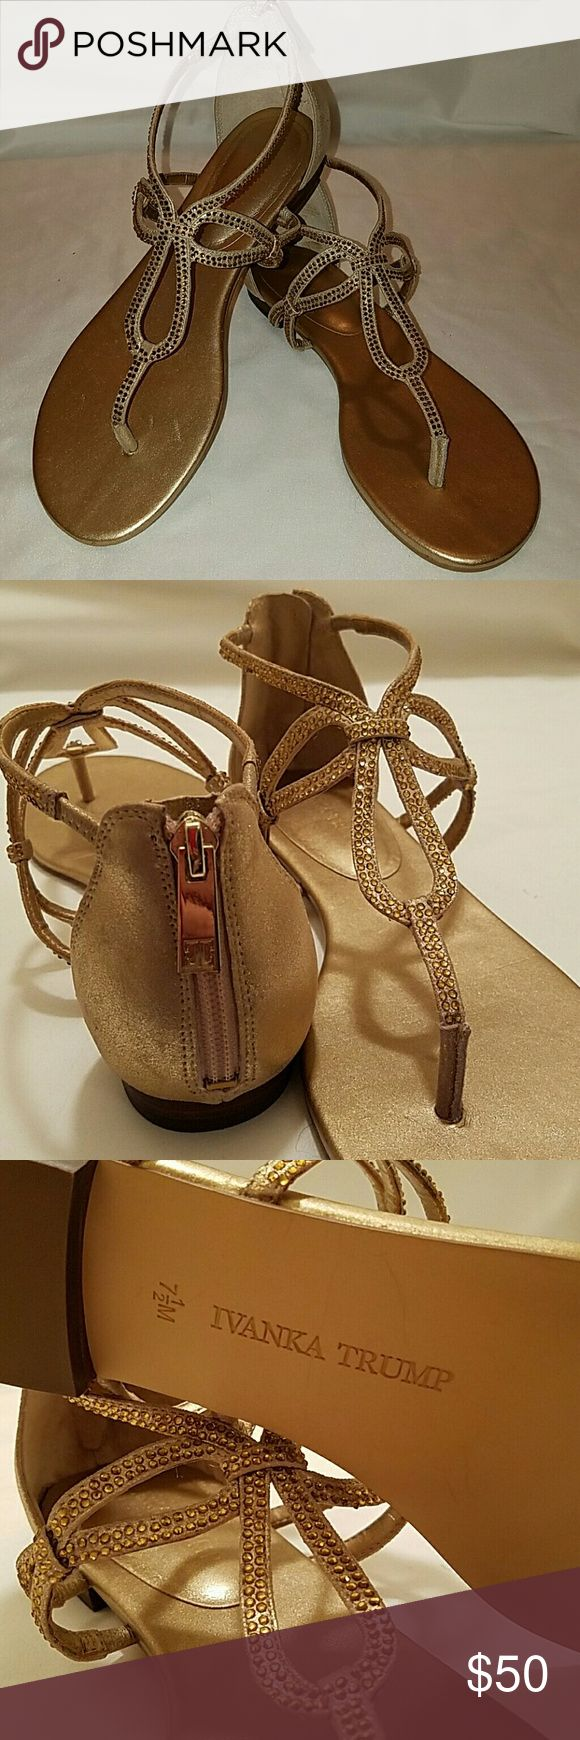 Ivanka Trump NIB Gold sandals This style selling elsewhere on the web for $70! Look great on your cruise or beach getaway in these stunning, size 7.5 Ivanka Trump suede sandals with gold zippers on back and gold tone crystal studs. Brand new, never worn. Ivanka Trump Shoes Sandals